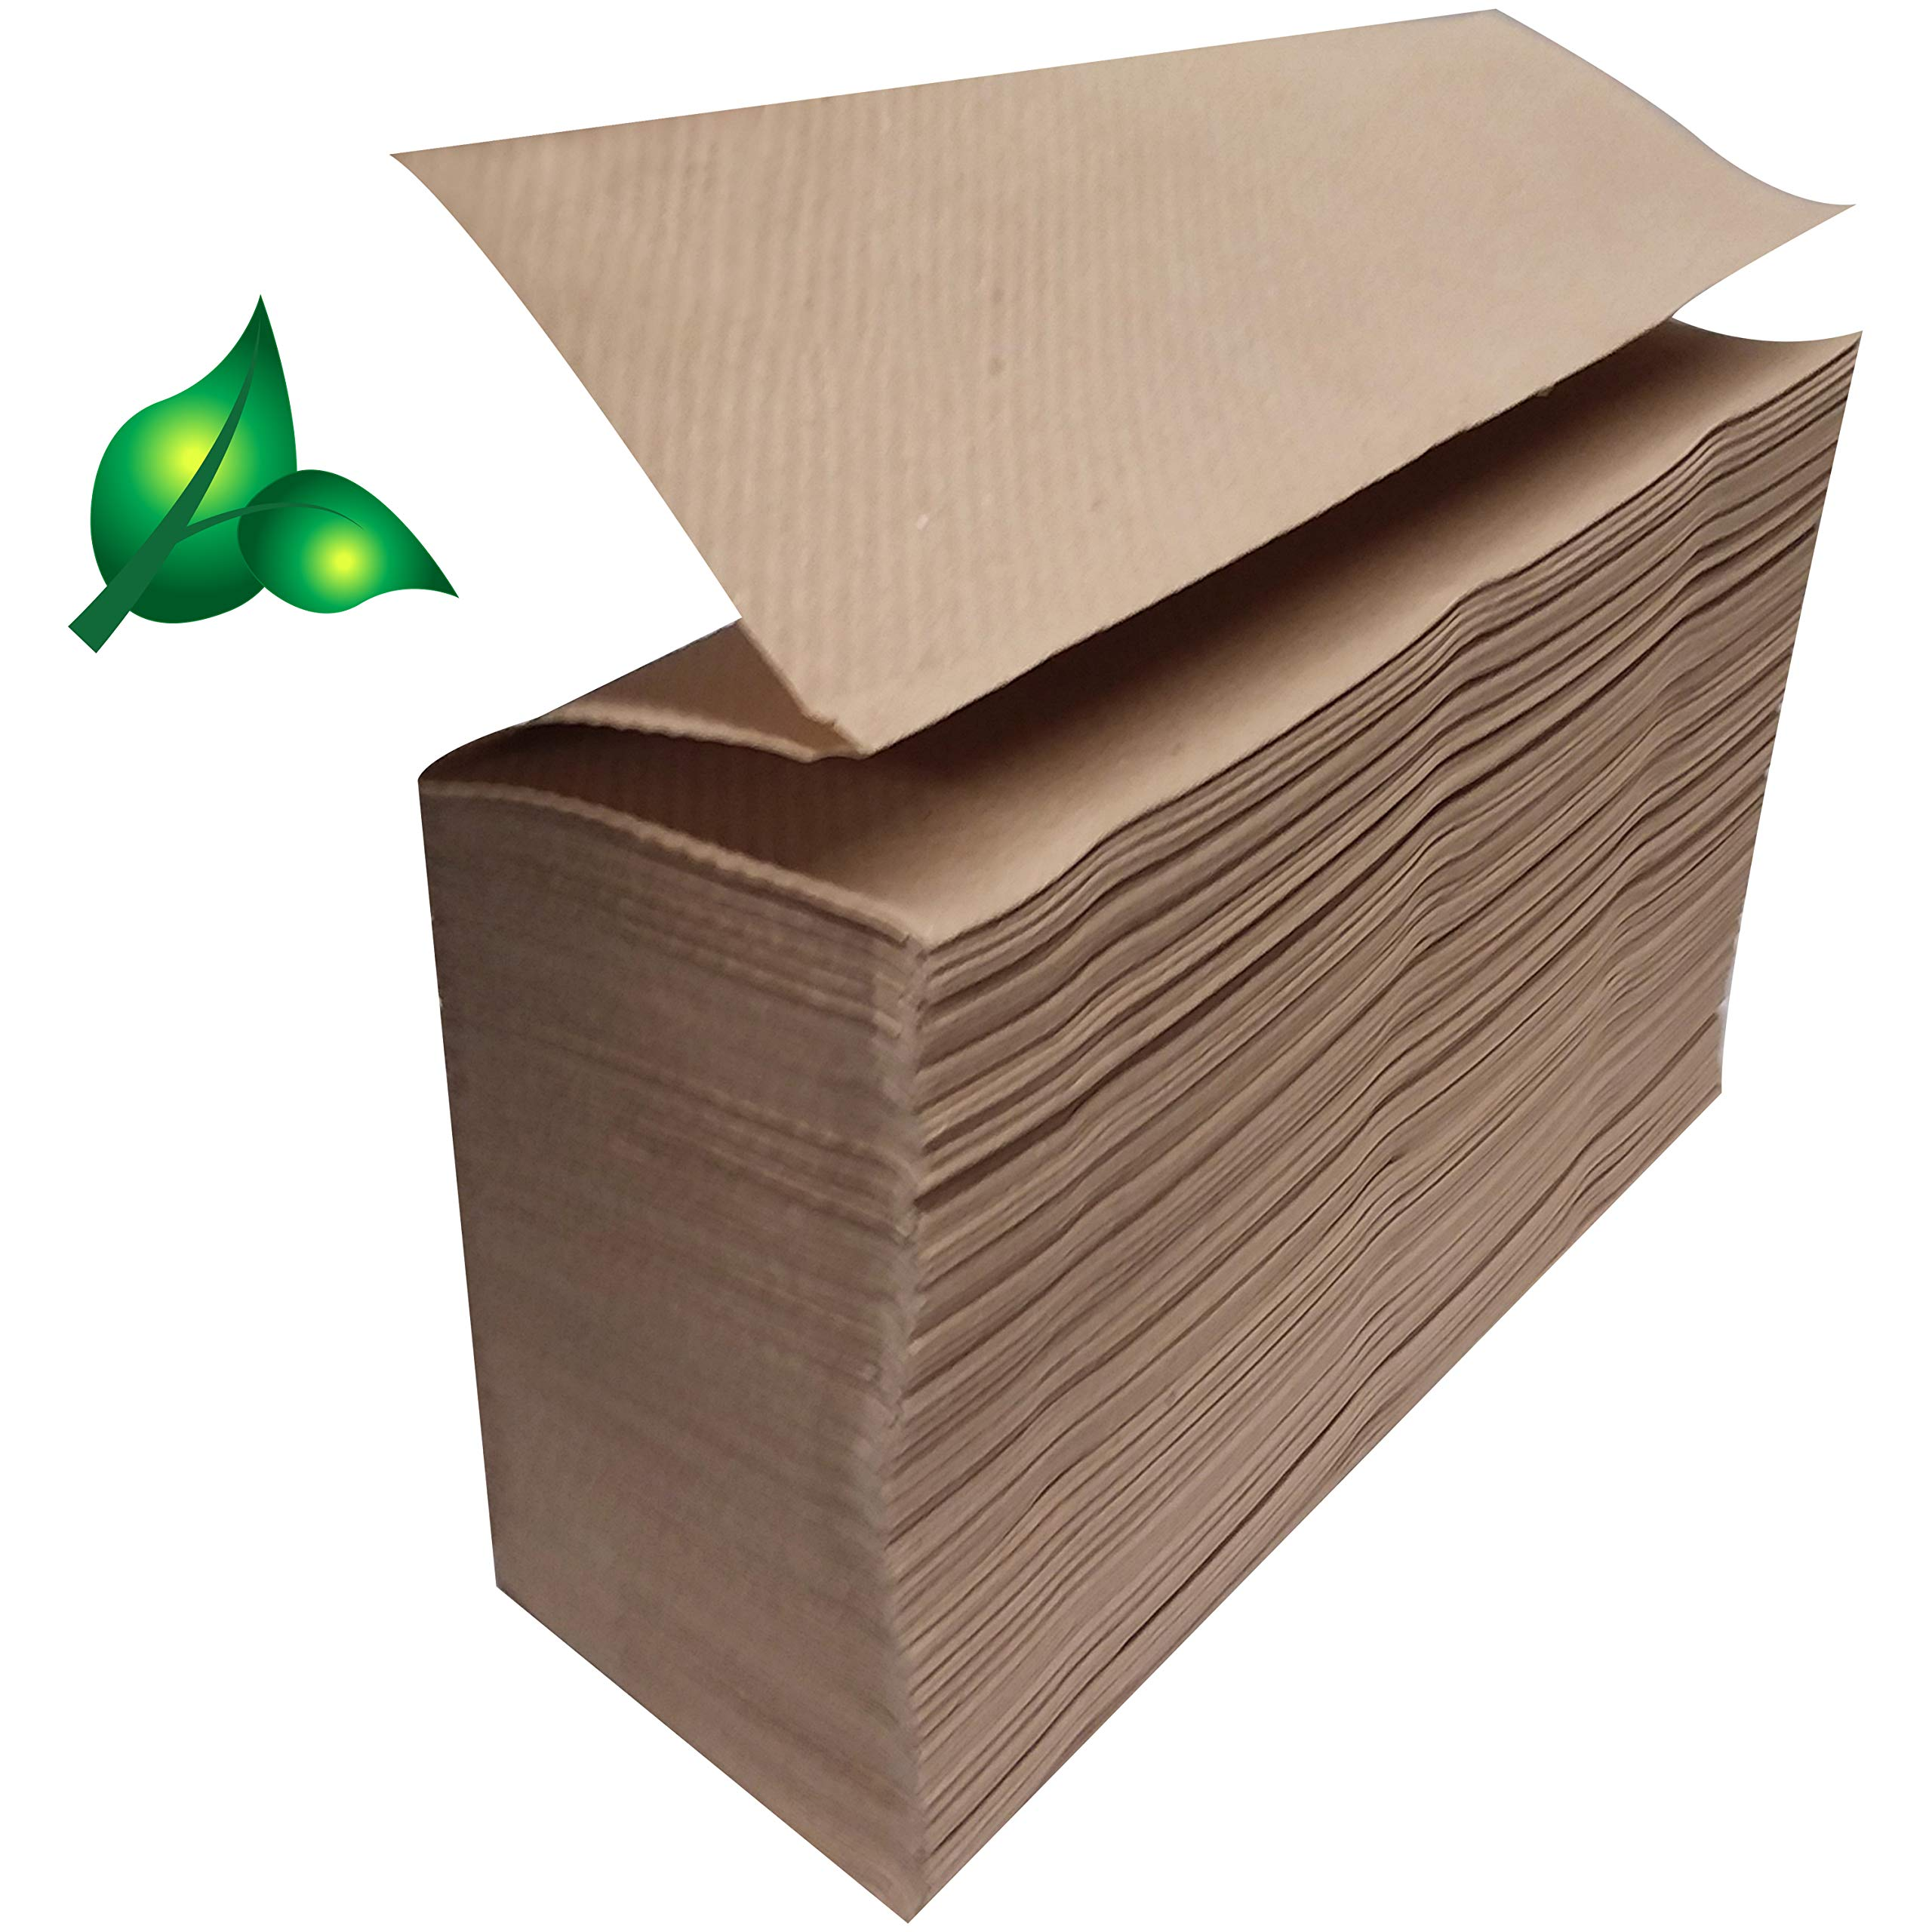 Recycled Unbleached Eco Paper Towels, 1000 Z Multifold Brown Organic 100% Post Consumer Waste by Upper Midland Products